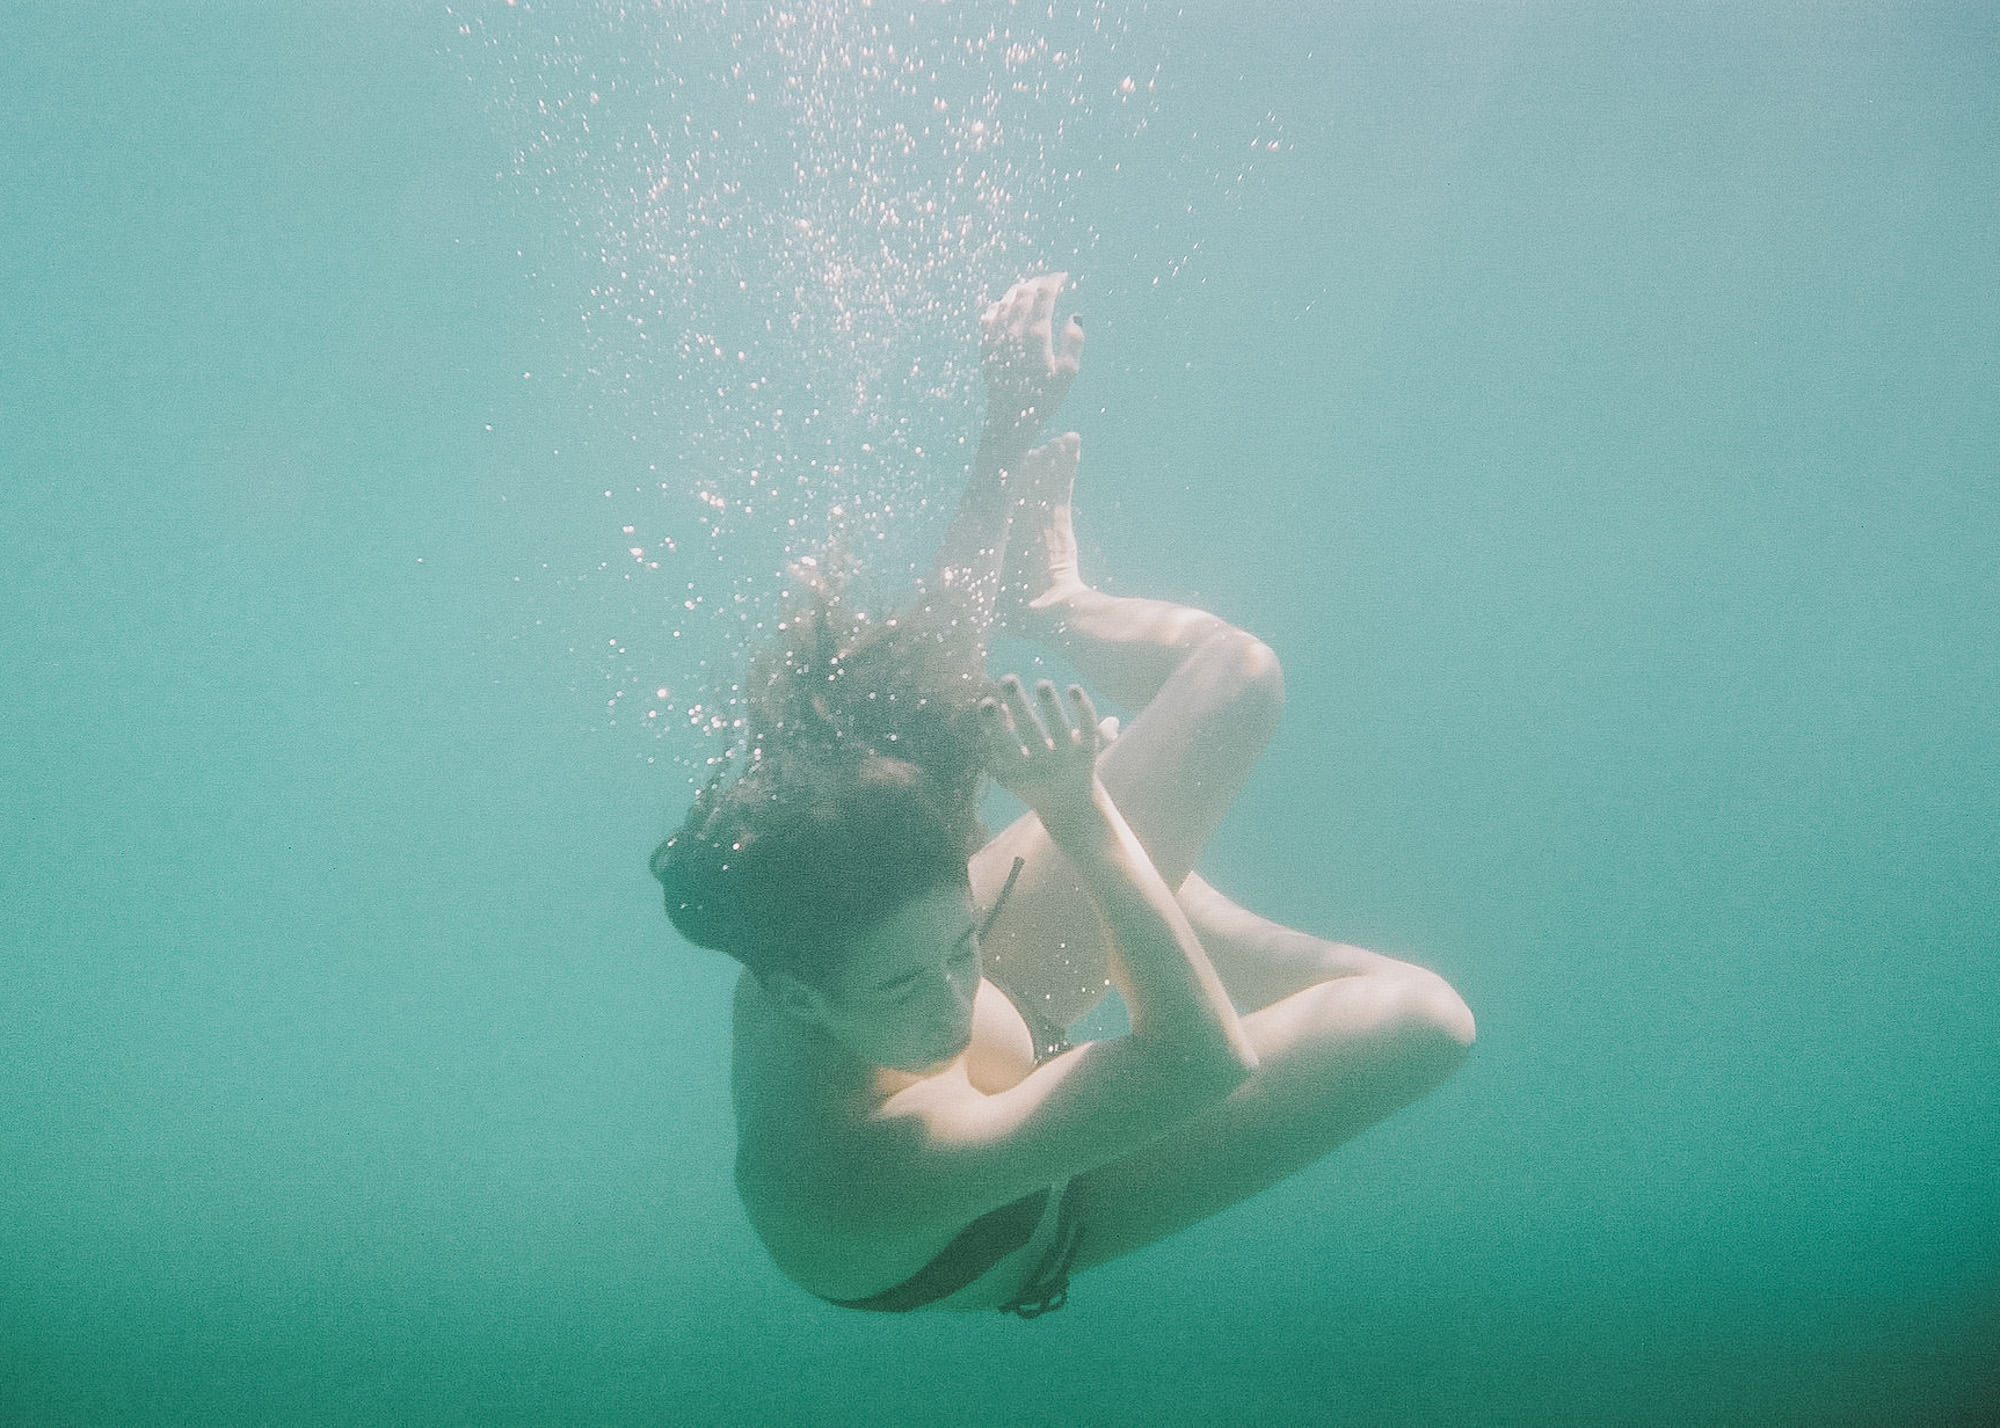 """It's about your other senses. Feeling the water and listening to your thoughts."" - — Rosie Gallen"